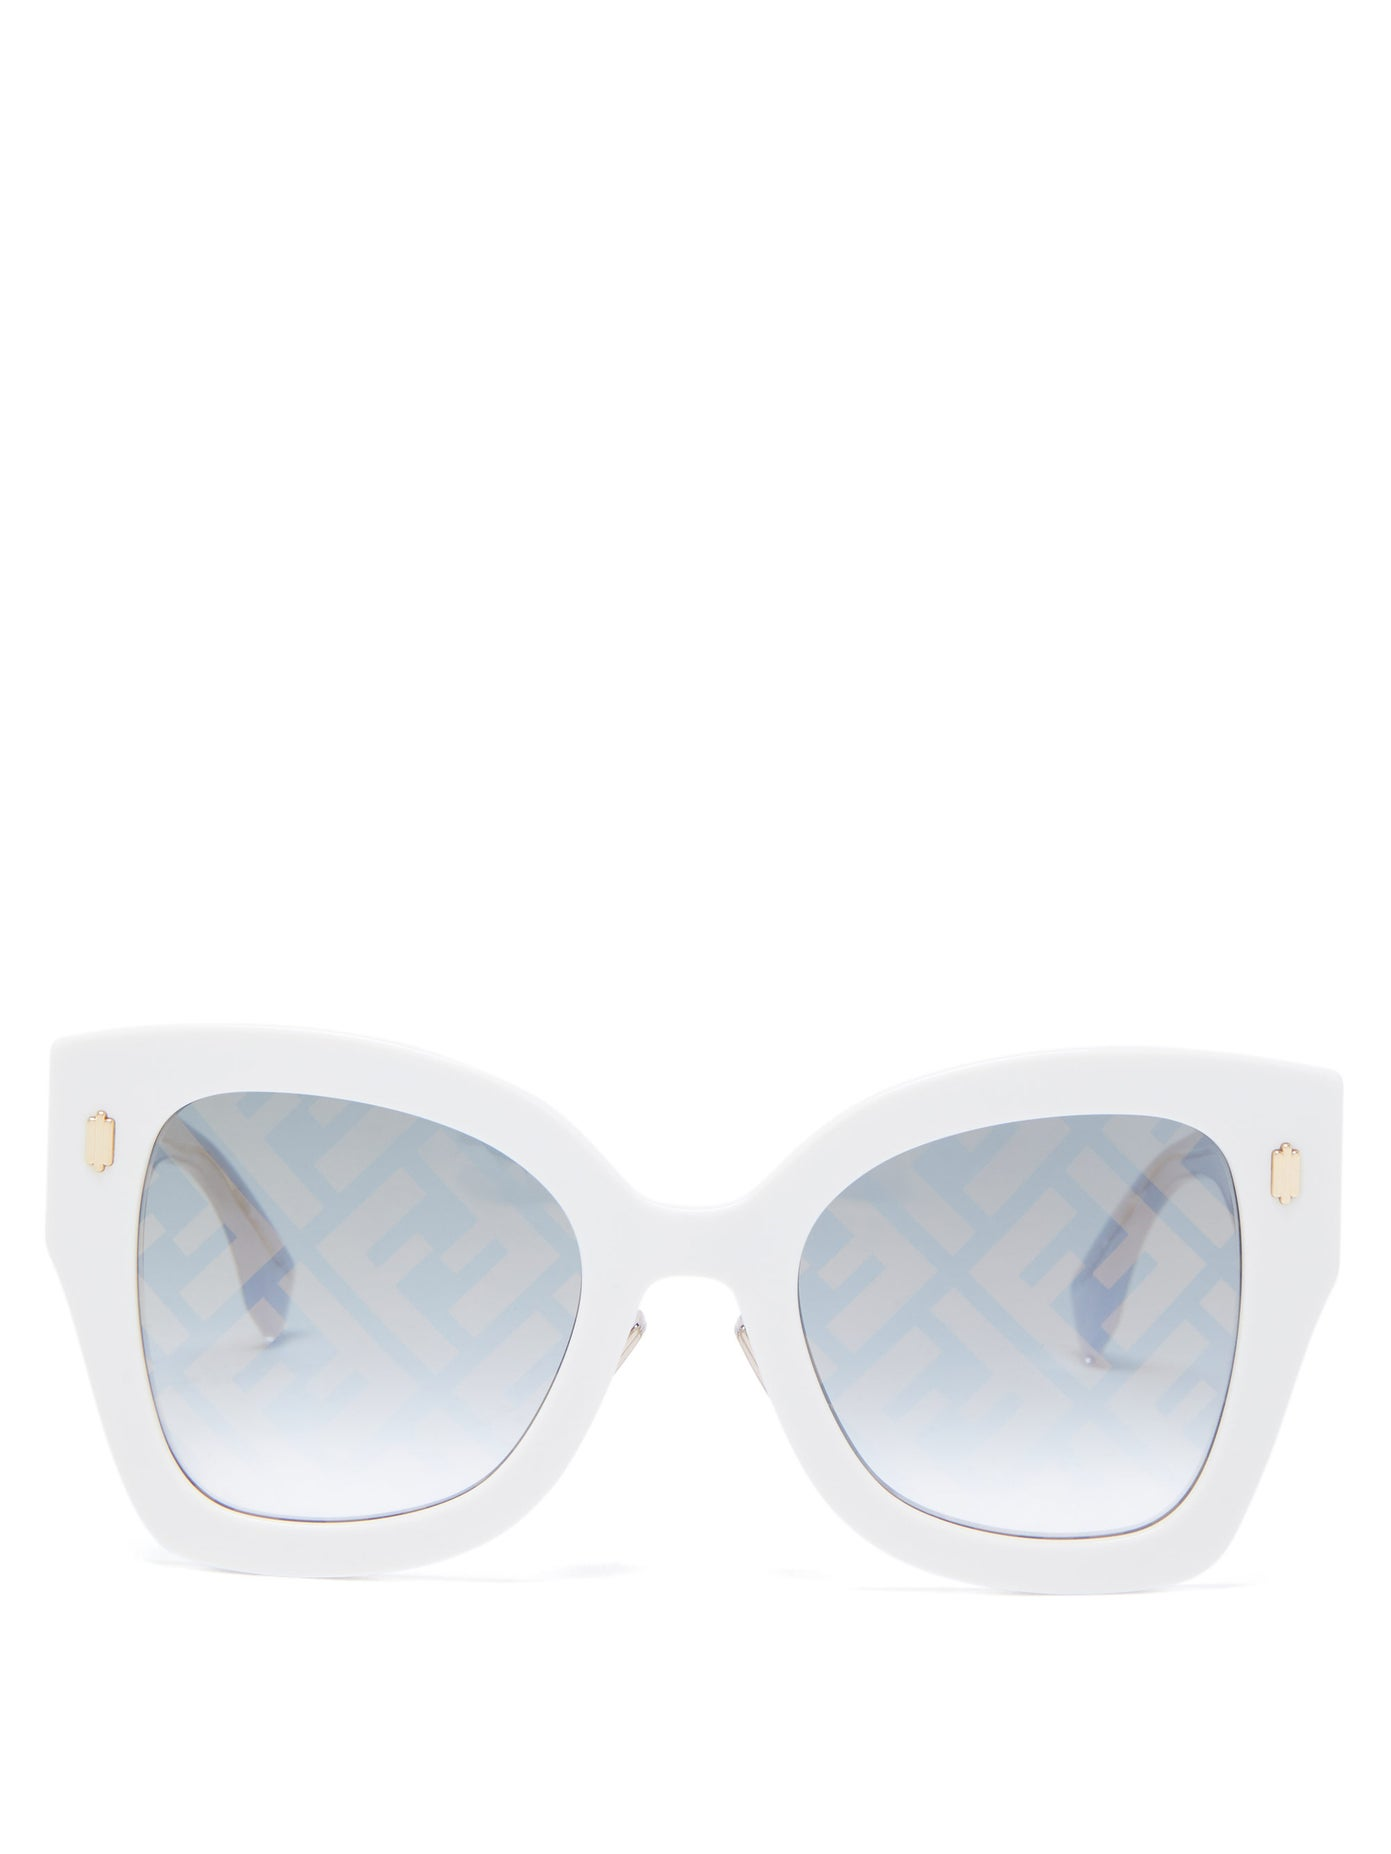 The best luxury holiday gifts in chic shades of the color white